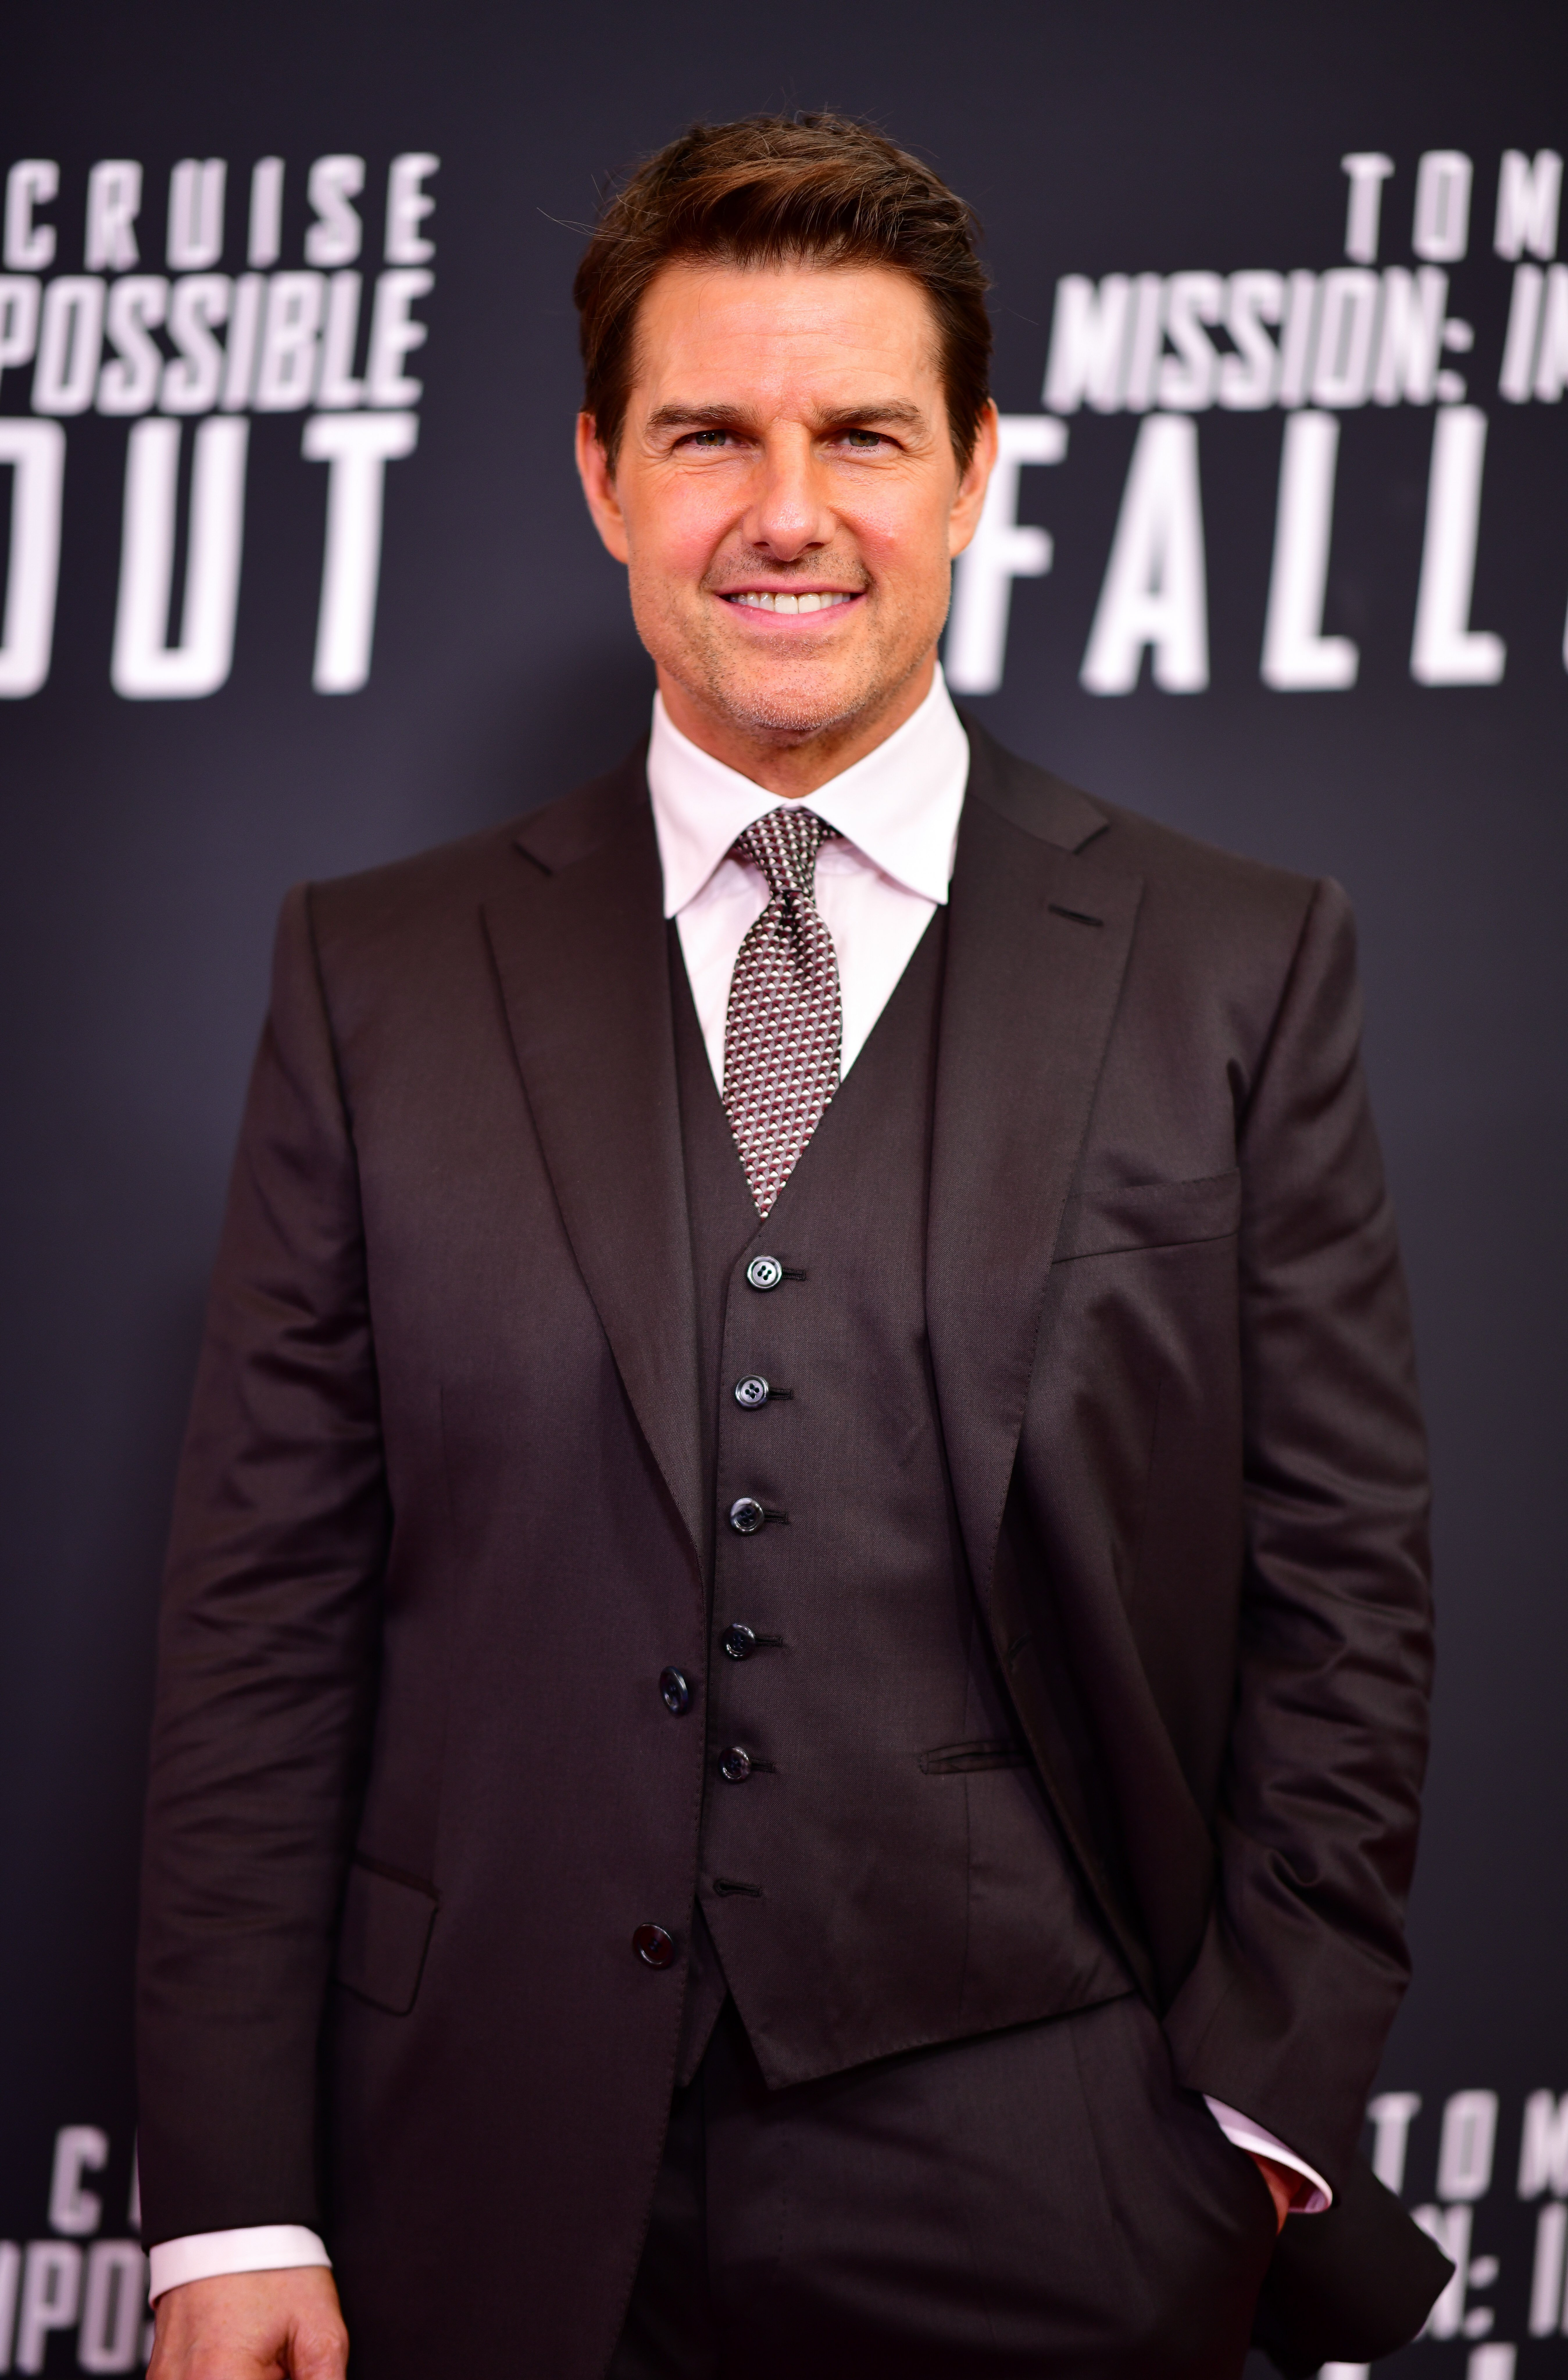 Tom Cruise at promotional event for Mission Impossible: Fallout | Photo: Getty Images